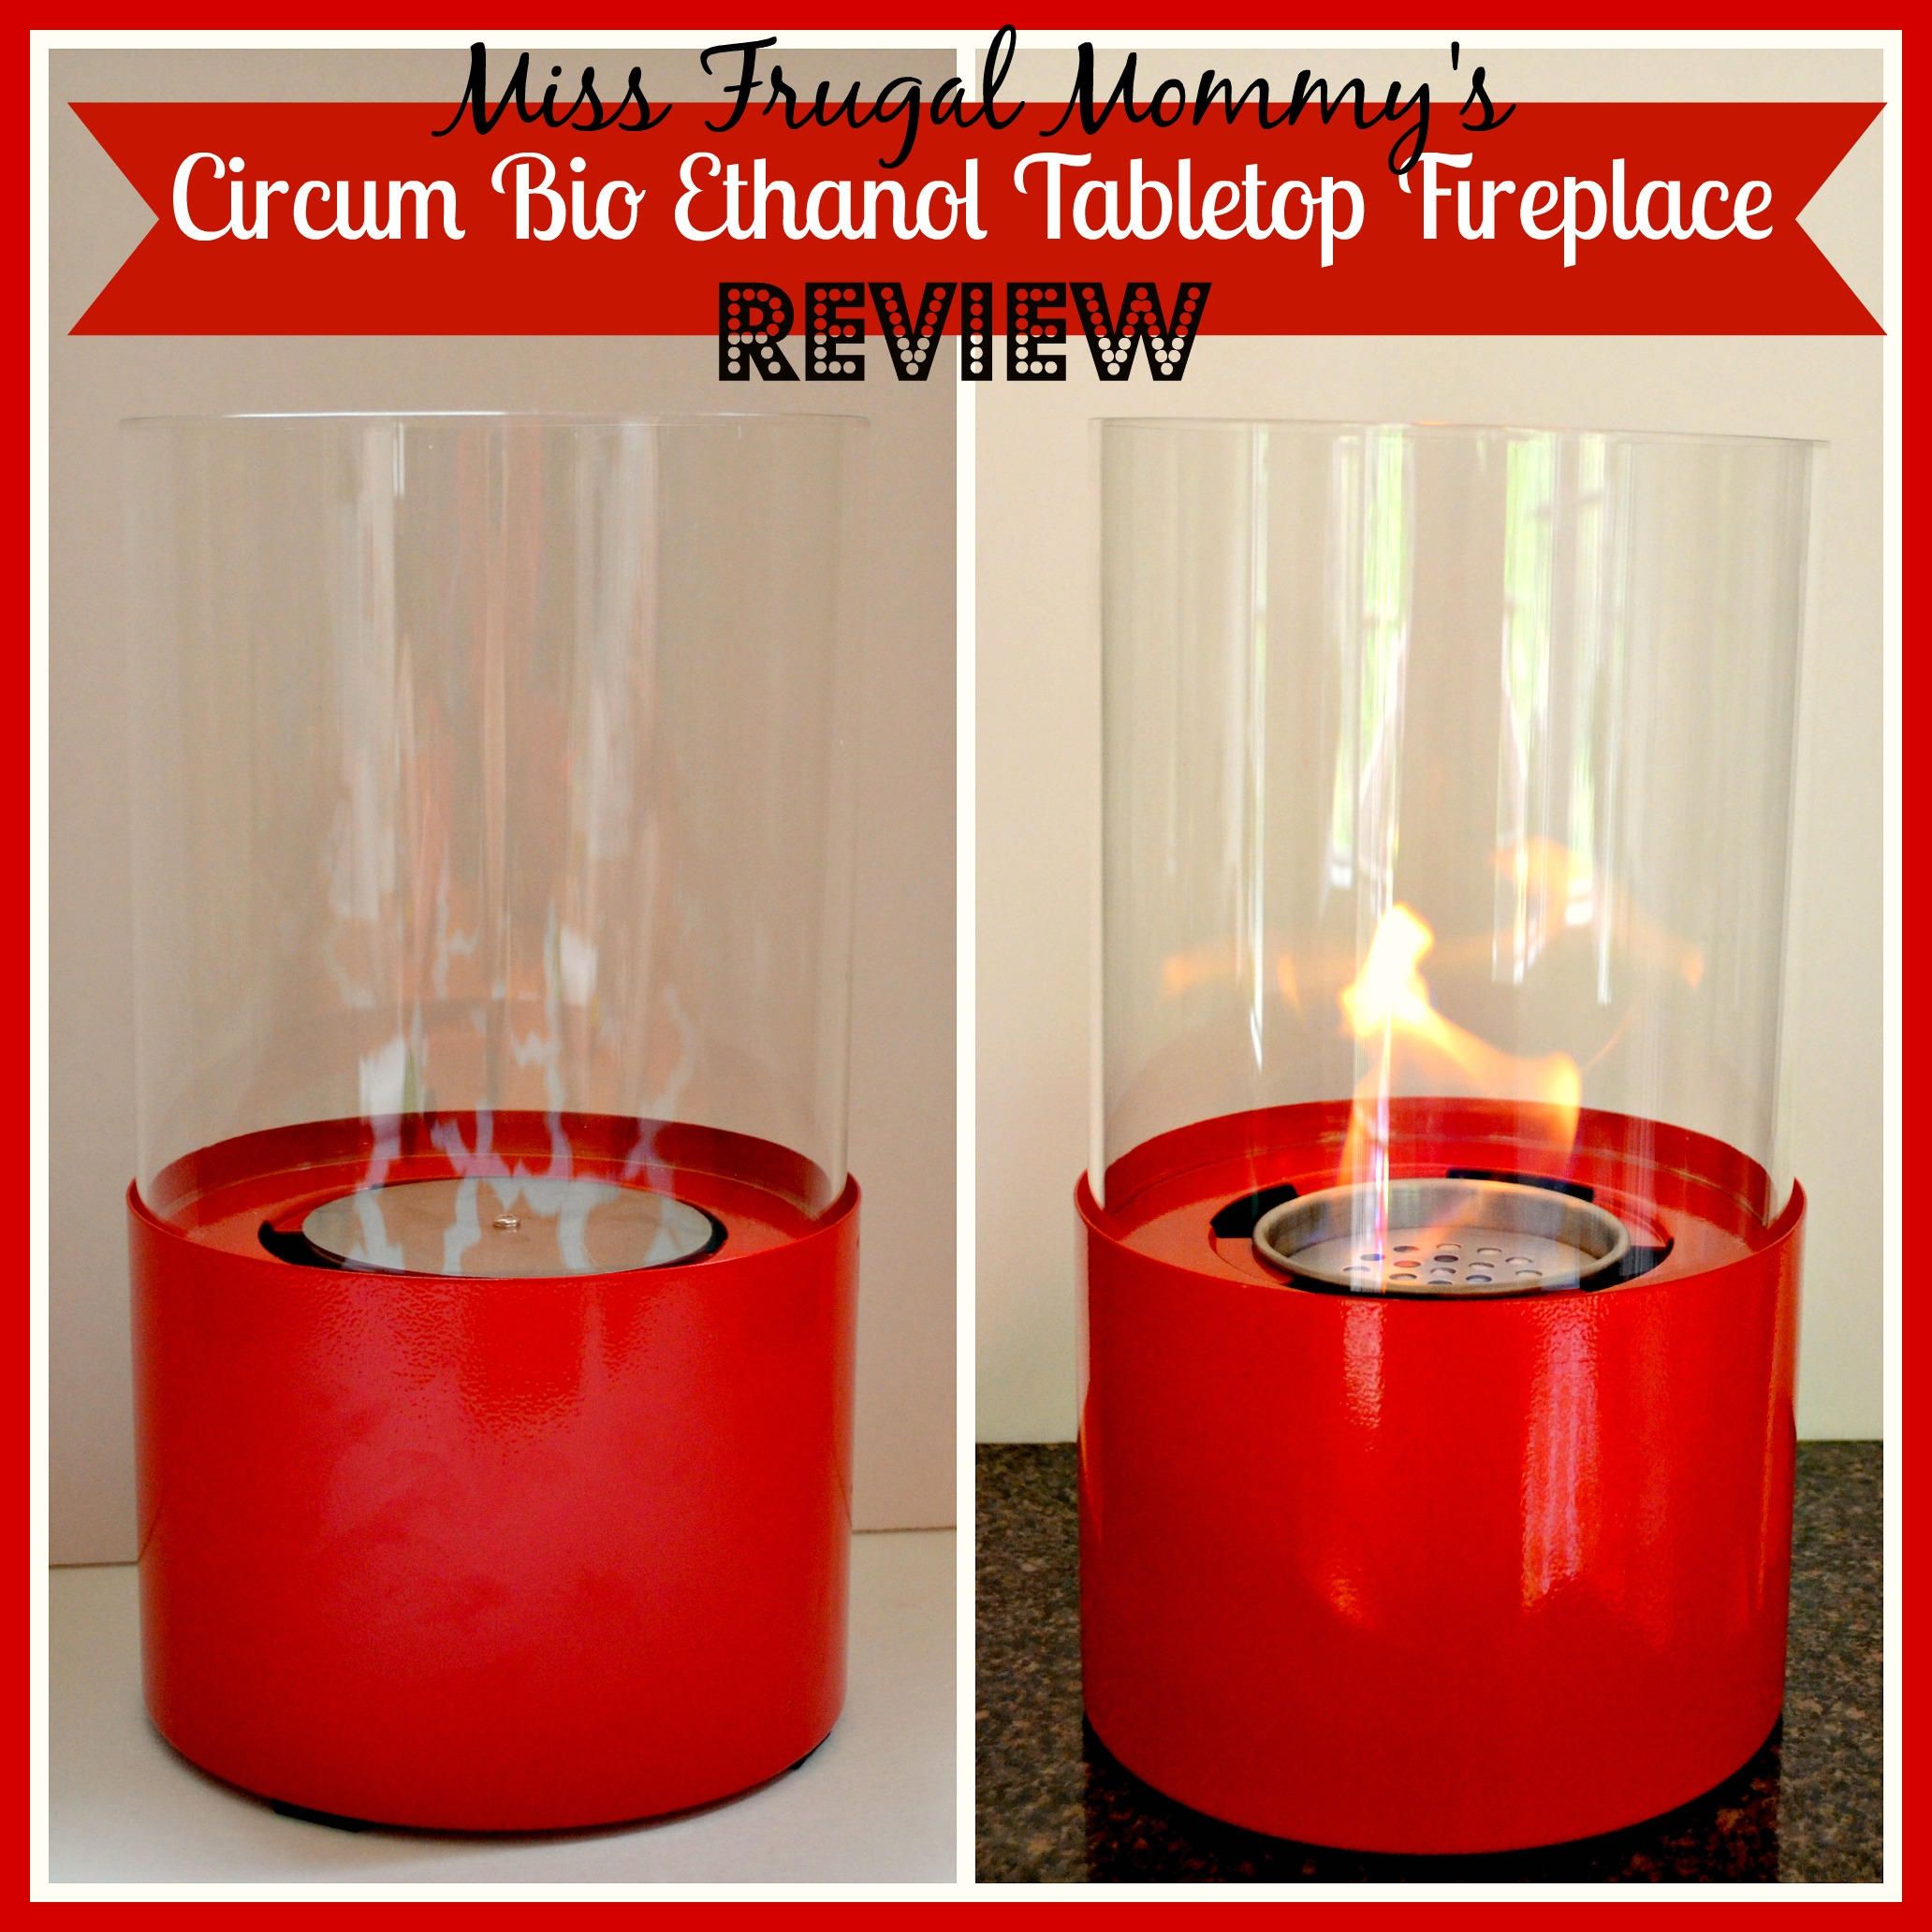 circum bio ethanol tabletop fireplace review u2013 miss frugal mommy